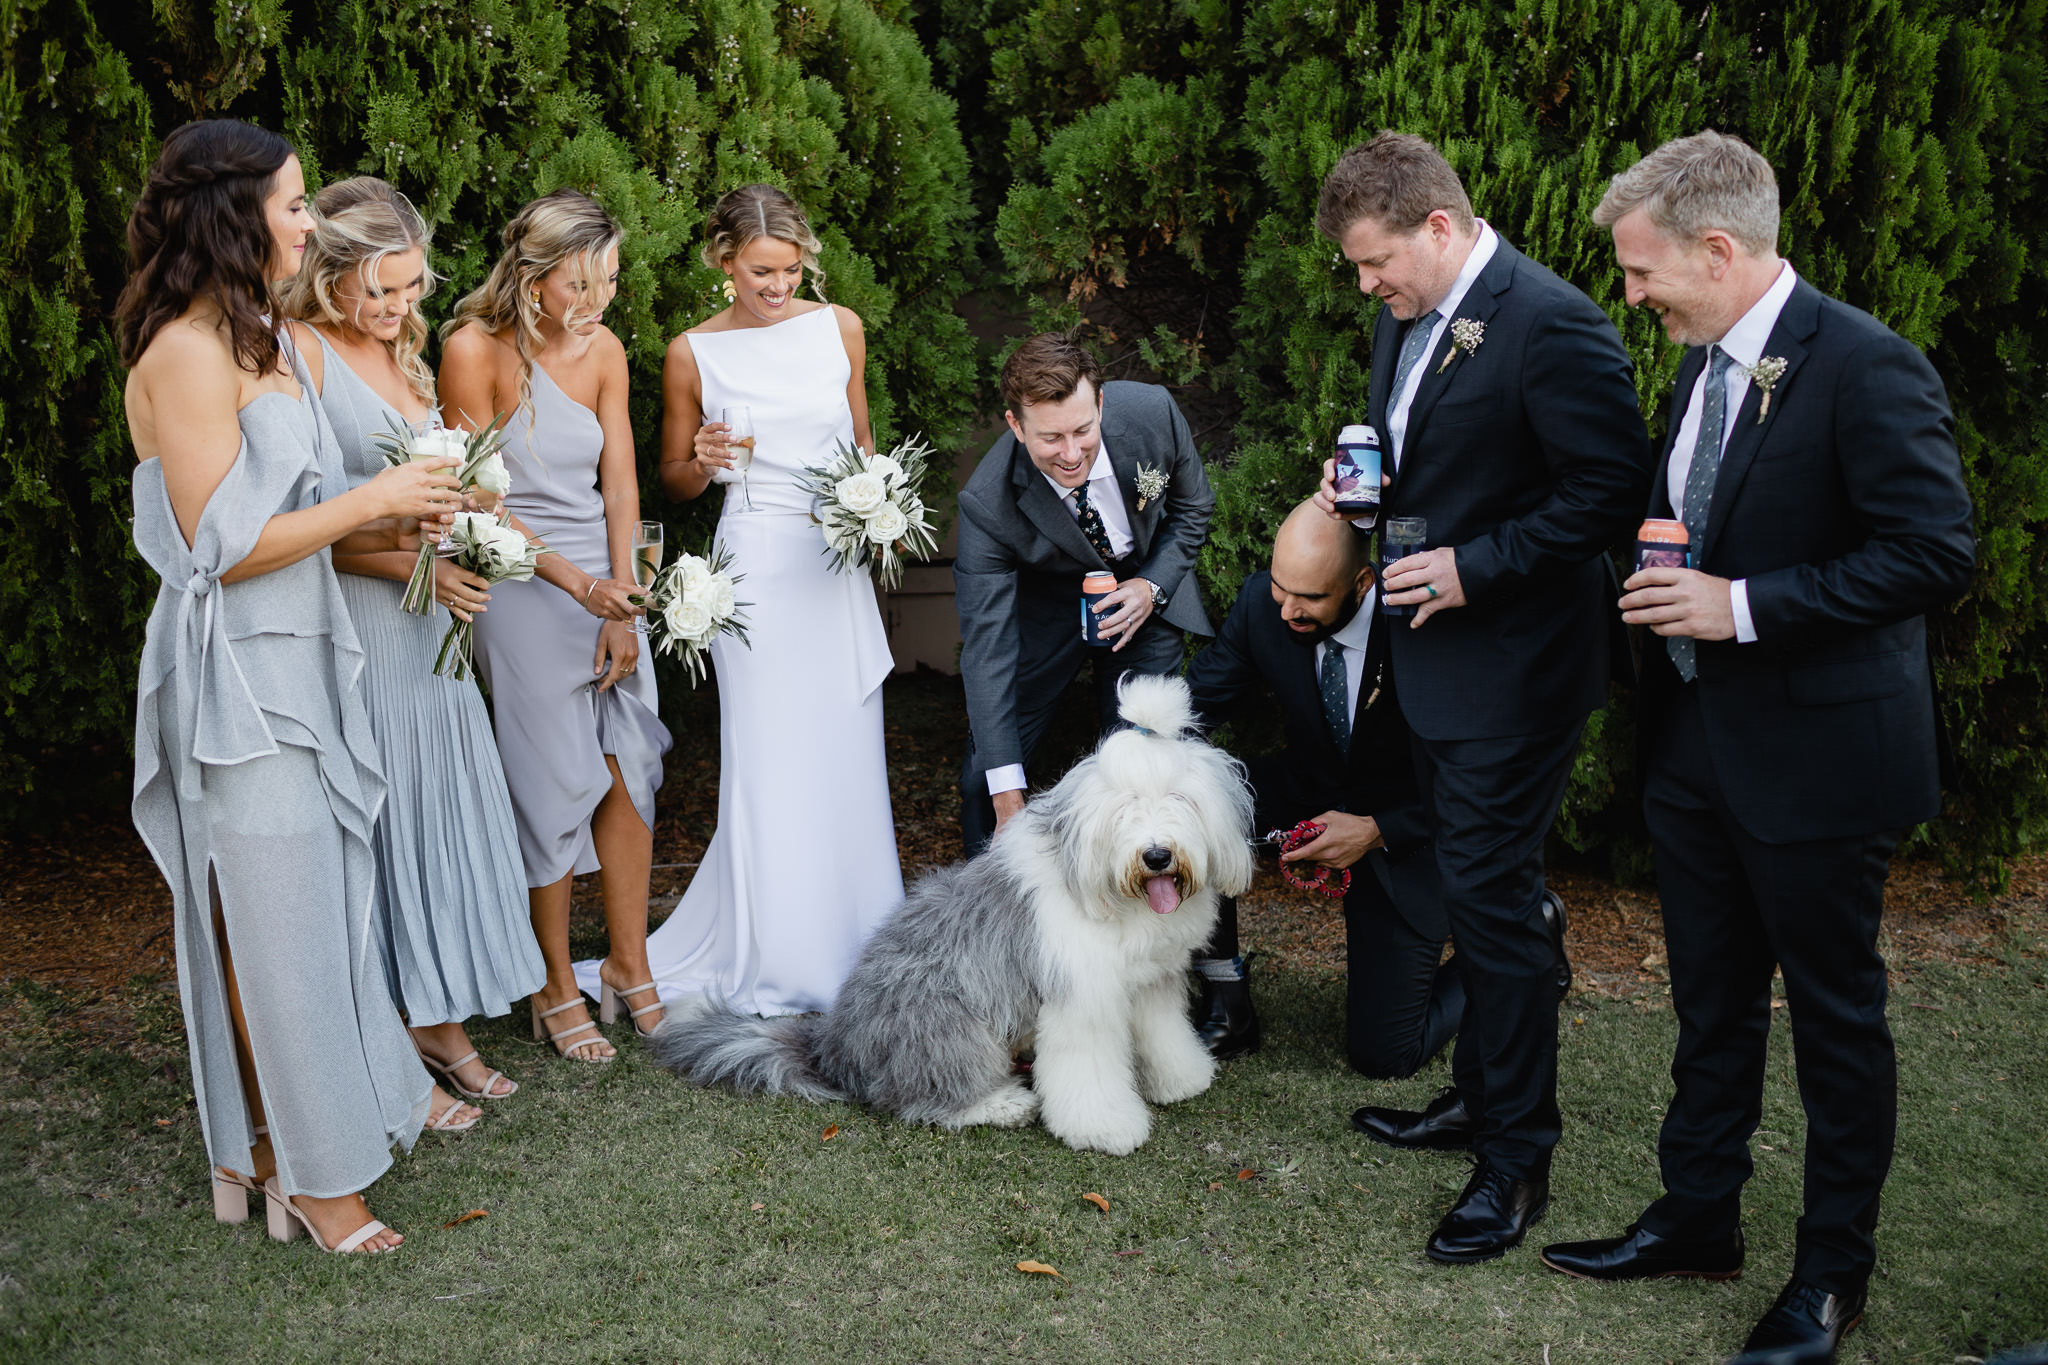 Smiling and laughing bridal party patting Old English Sheepdog that photobombed their wedding photos